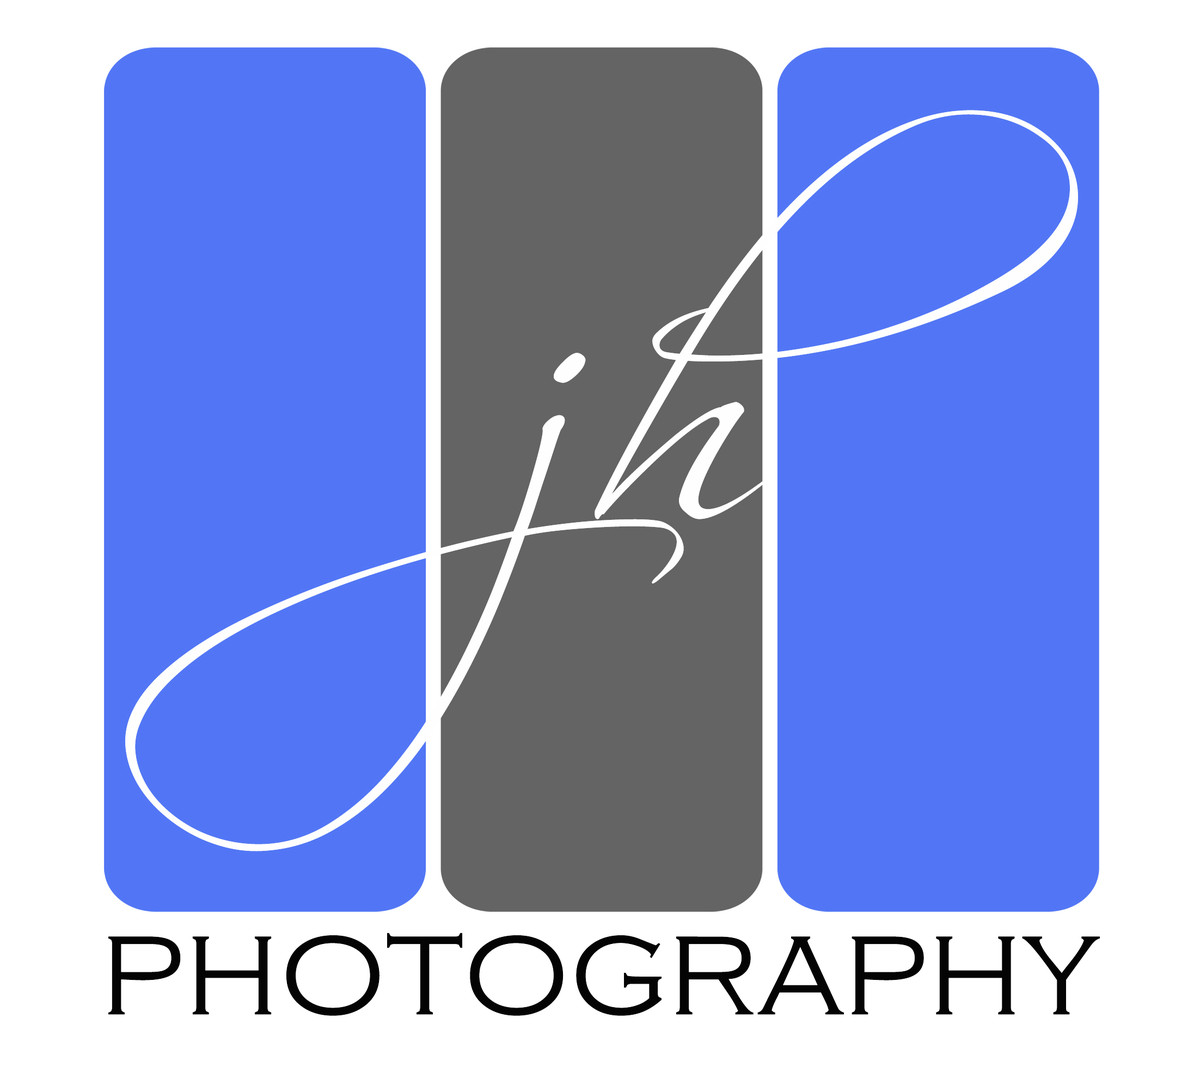 JH Photography - Photography - Toledo, OH - WeddingWire